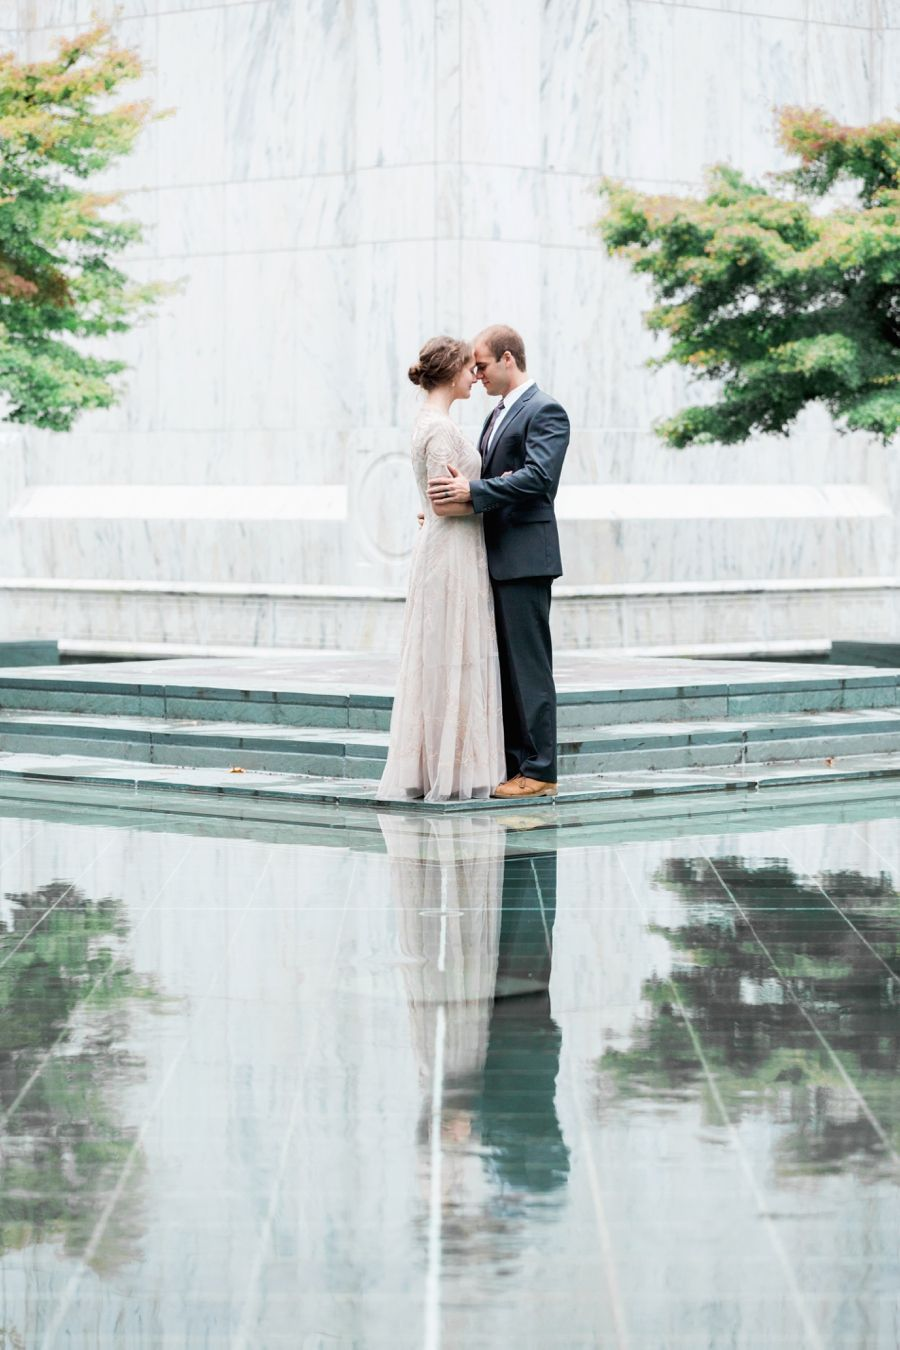 Kimbry Studios Destination Wedding Photography: Tanner + Megan ...